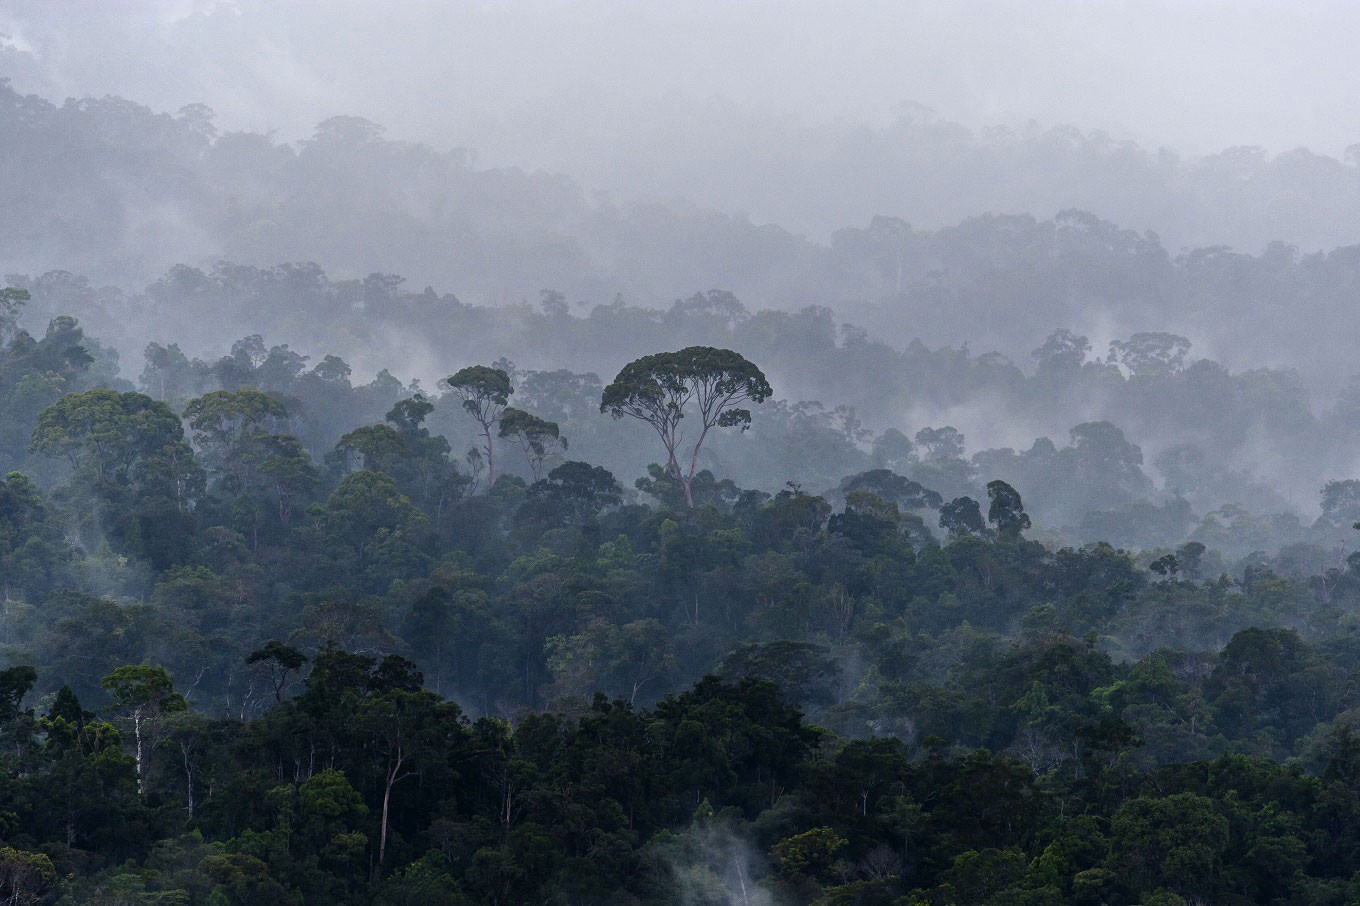 Philanthropic groups siphon US$459 million to protect forests, indigenous peoples